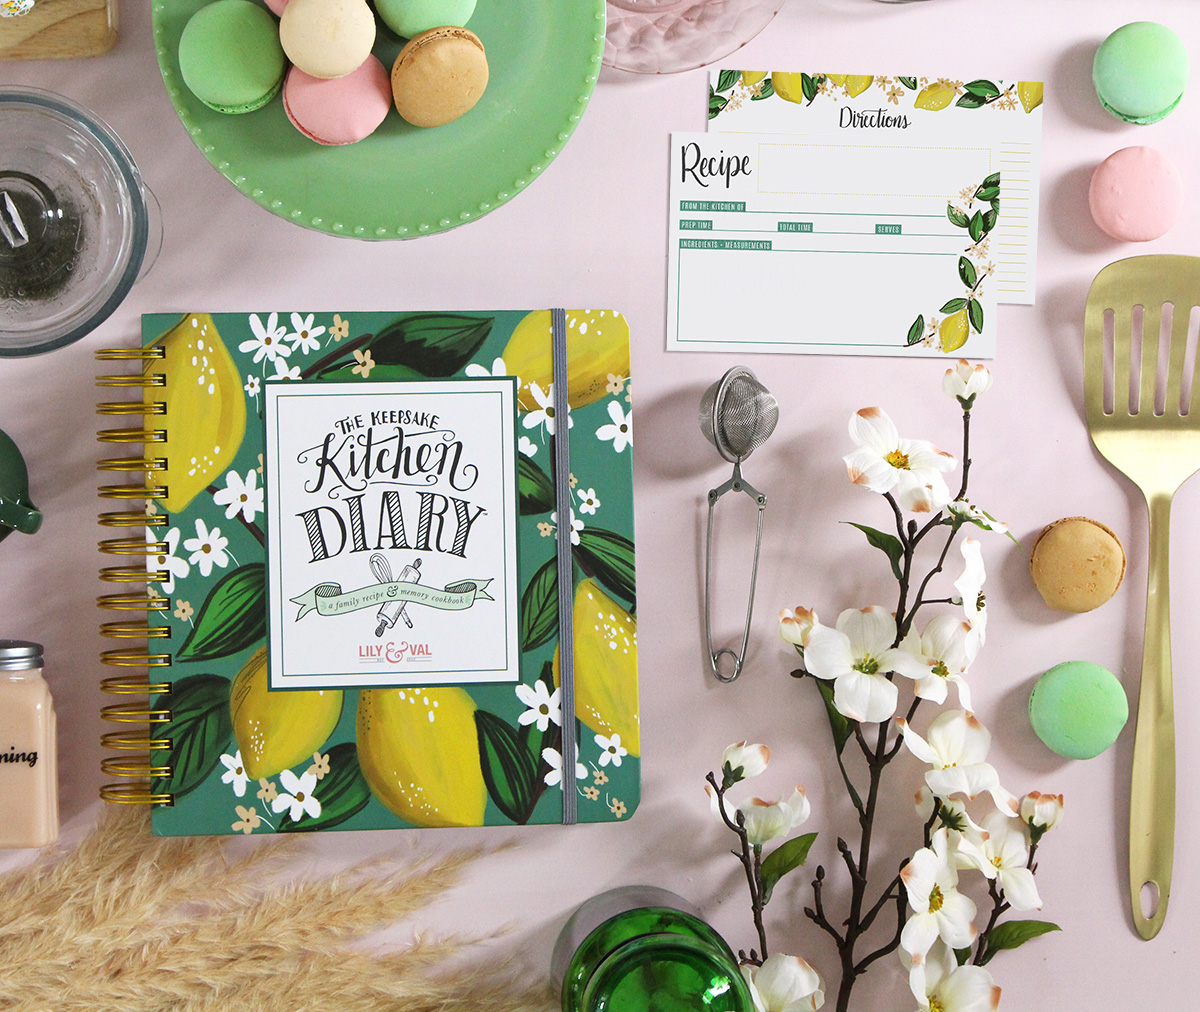 New Whimsical Lemon Keepsake Kitchen Diary and coordinating lemon recipe card pack bundle!